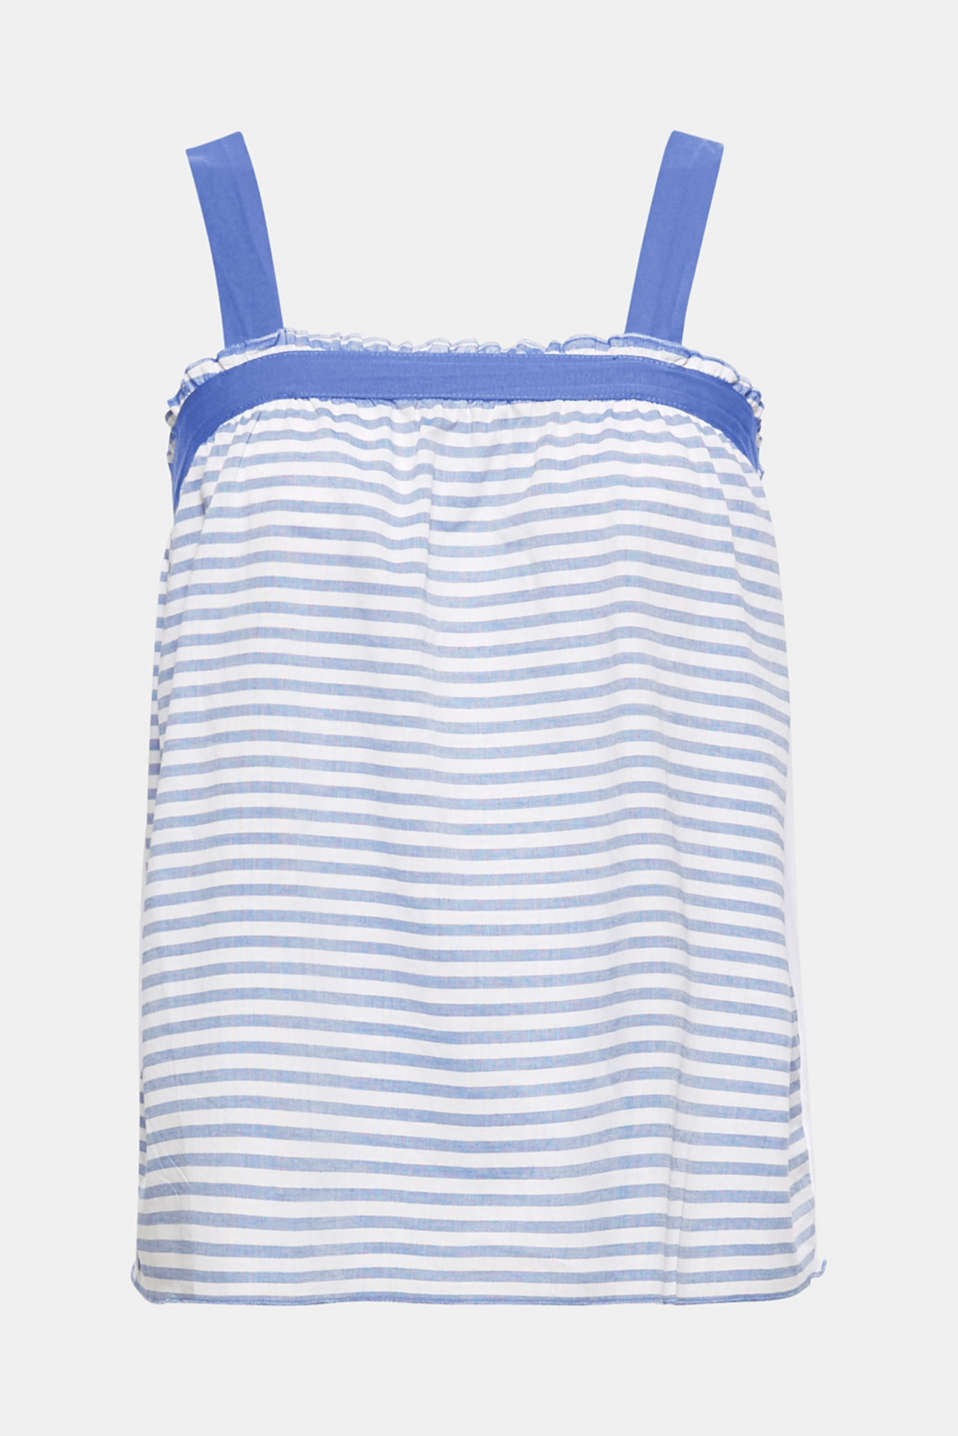 This delicate cotton top in a feminine babydoll style features a floaty width, comfortable straps and fresh stripe pattern.